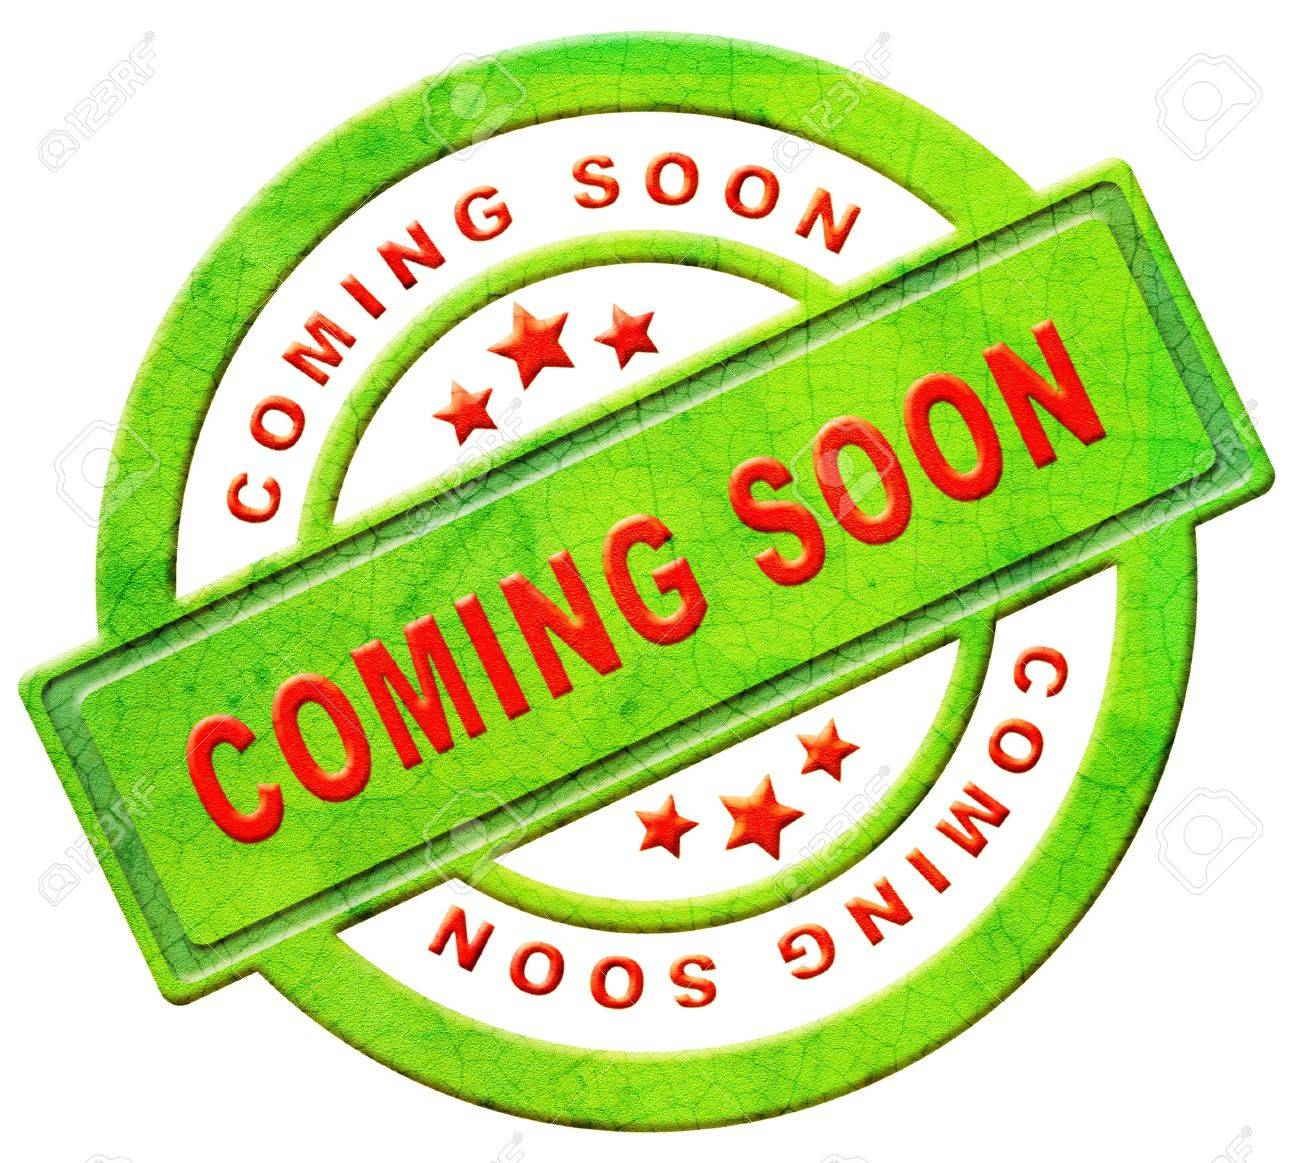 coming soon label new arrival announcement product campain notification soon available red text on green icon isolated on white Stock Photo - 12440960